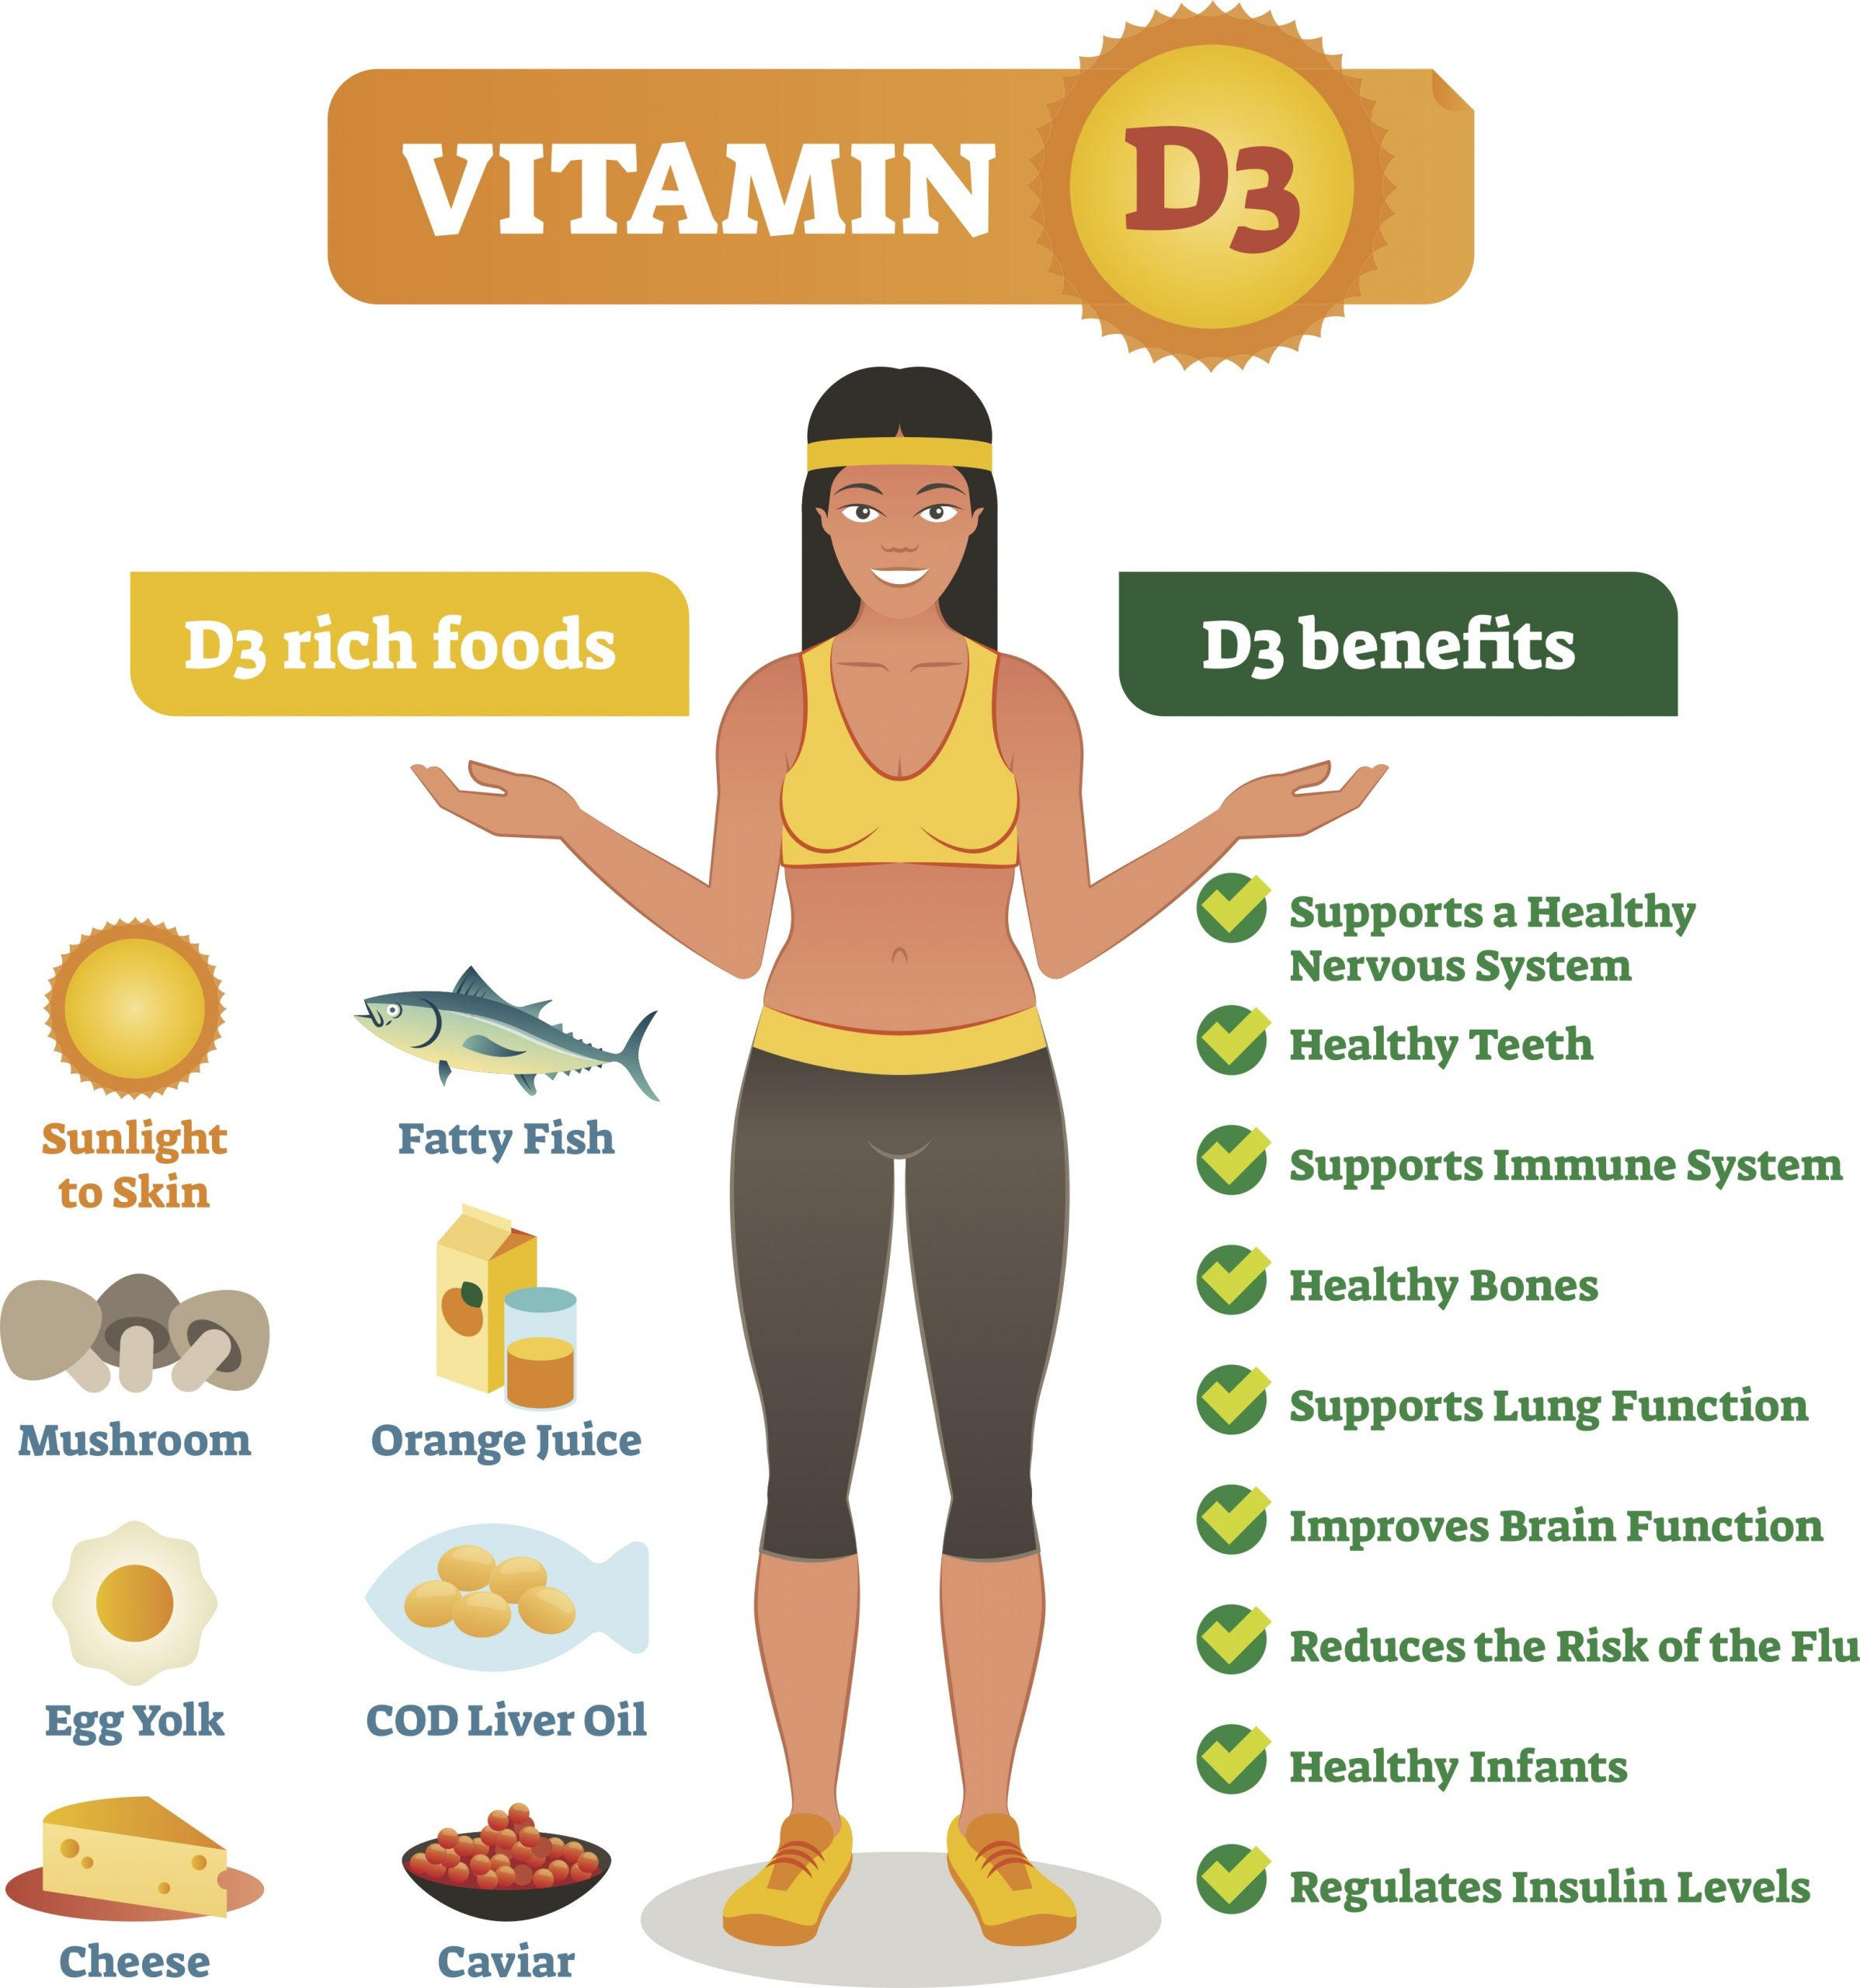 Why All This Talk About Vitamin D3?